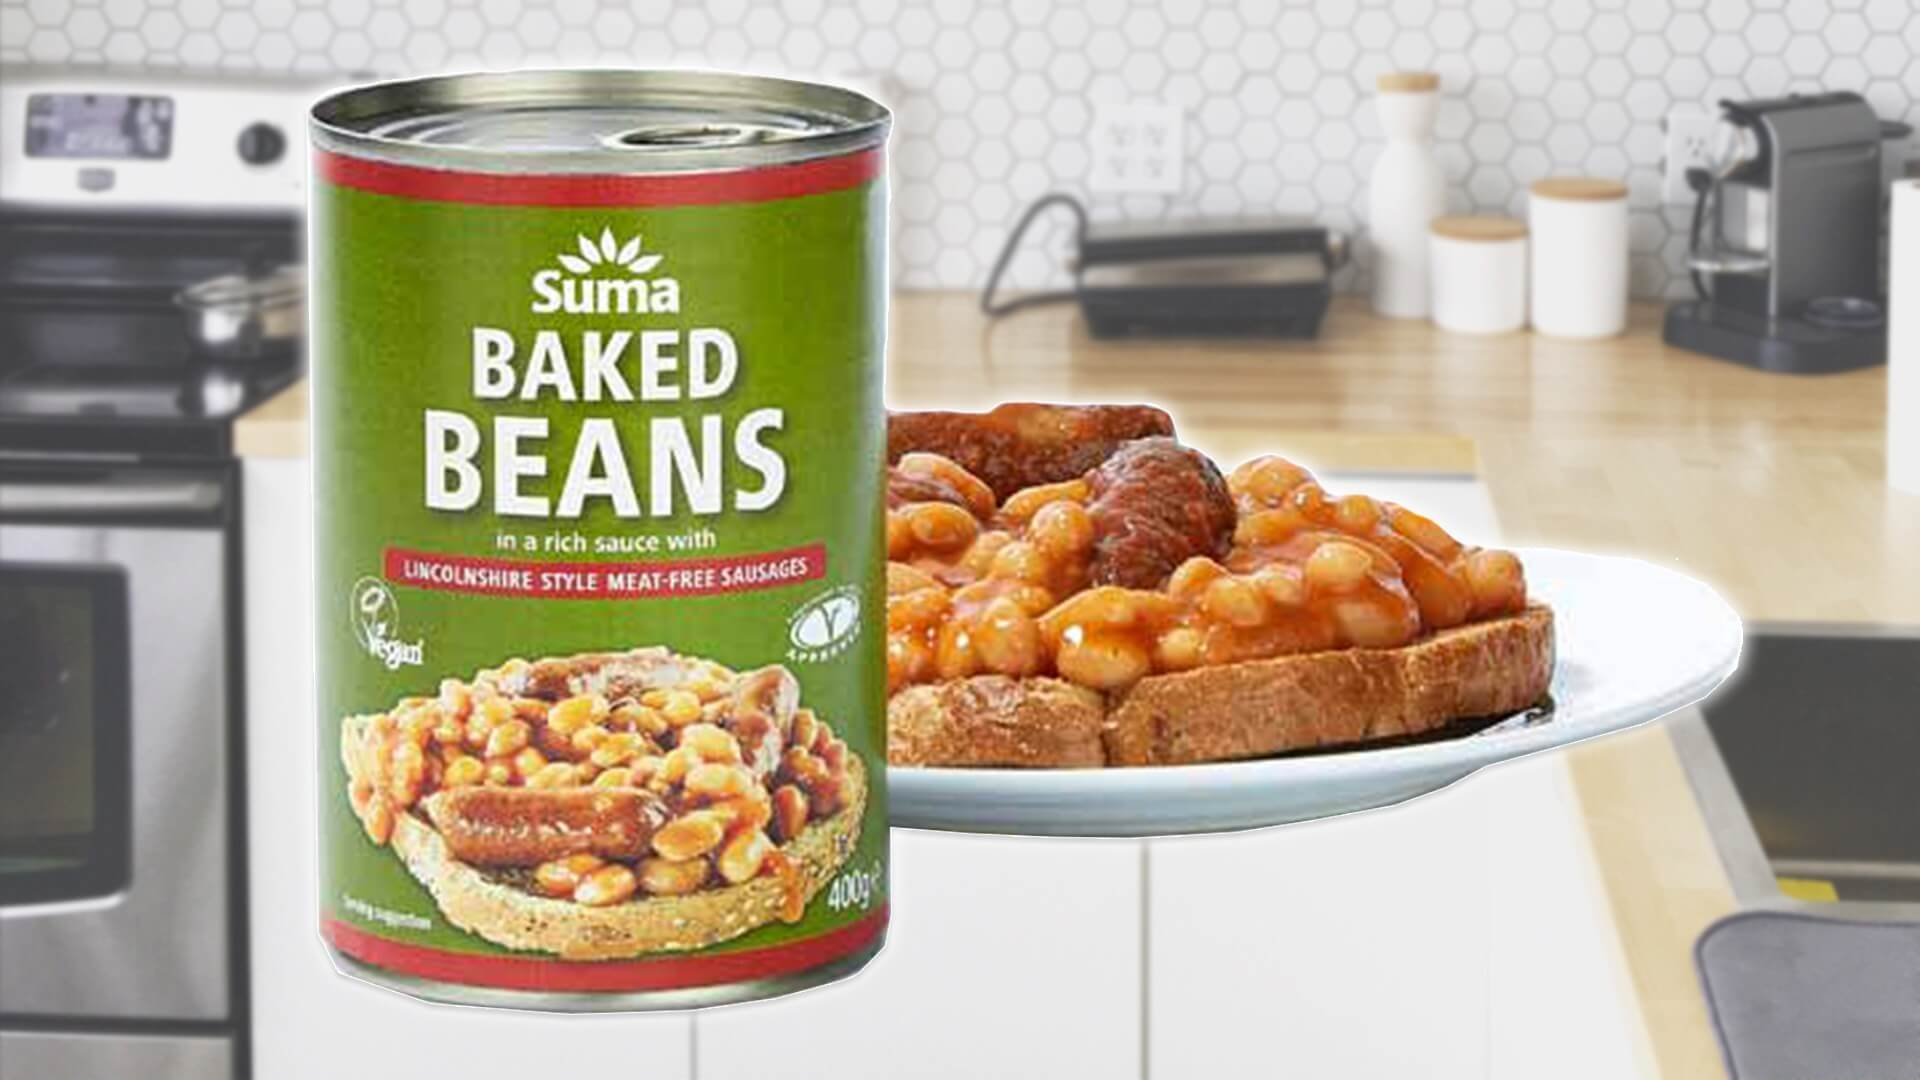 Canned Vegan Sausages And Beans Are Now at Co-Op Stores